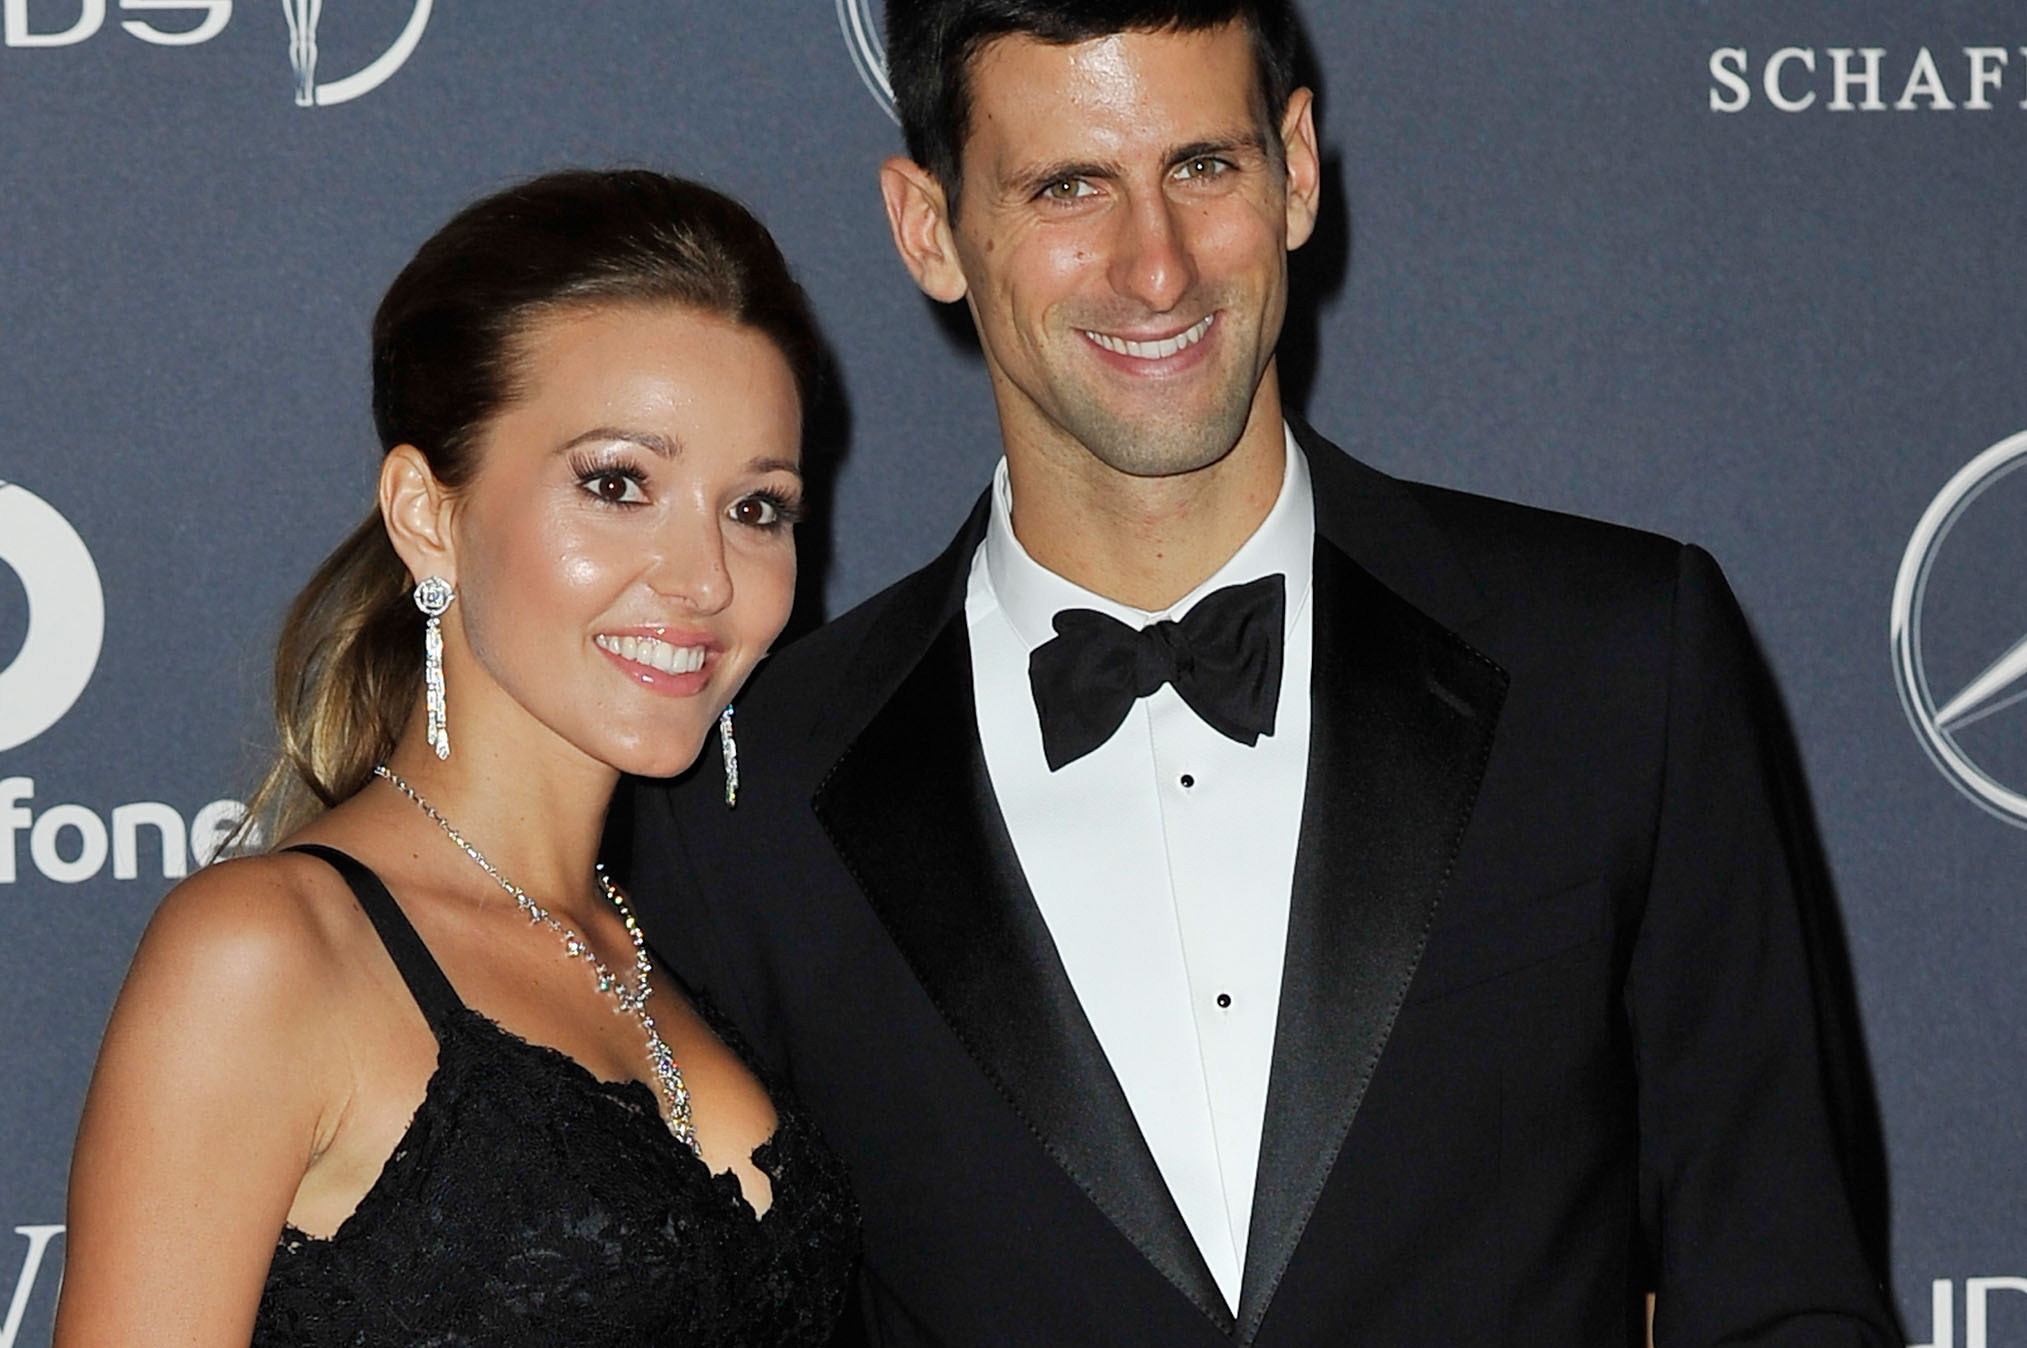 Novak Djokovic Pops Question Reportedly Engaged To Girlfriend Jelena Ristic Bleacher Report Latest News Videos And Highlights